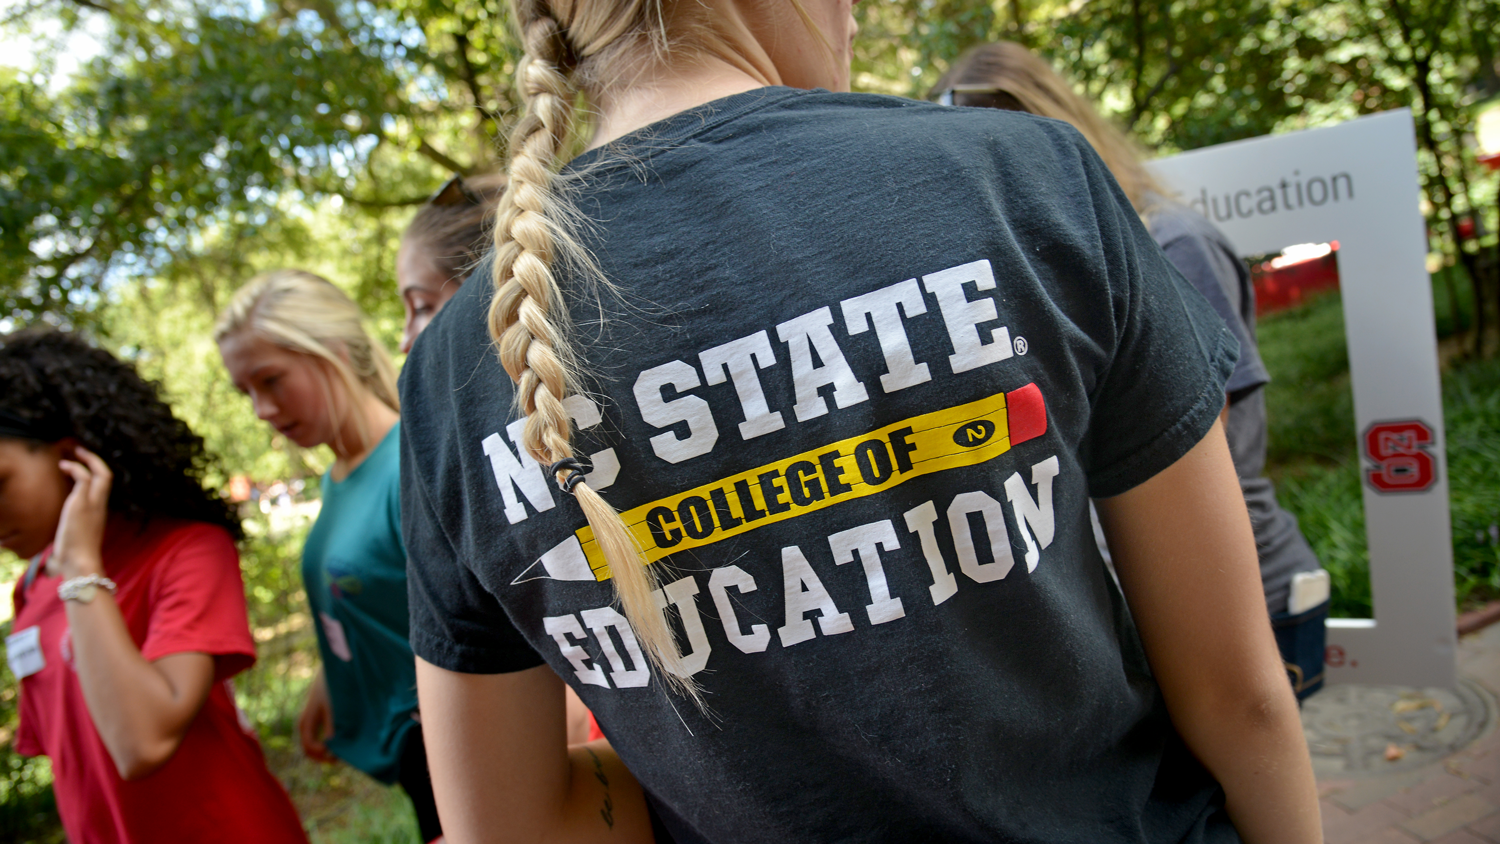 A student wearing a College of Education T-shirt